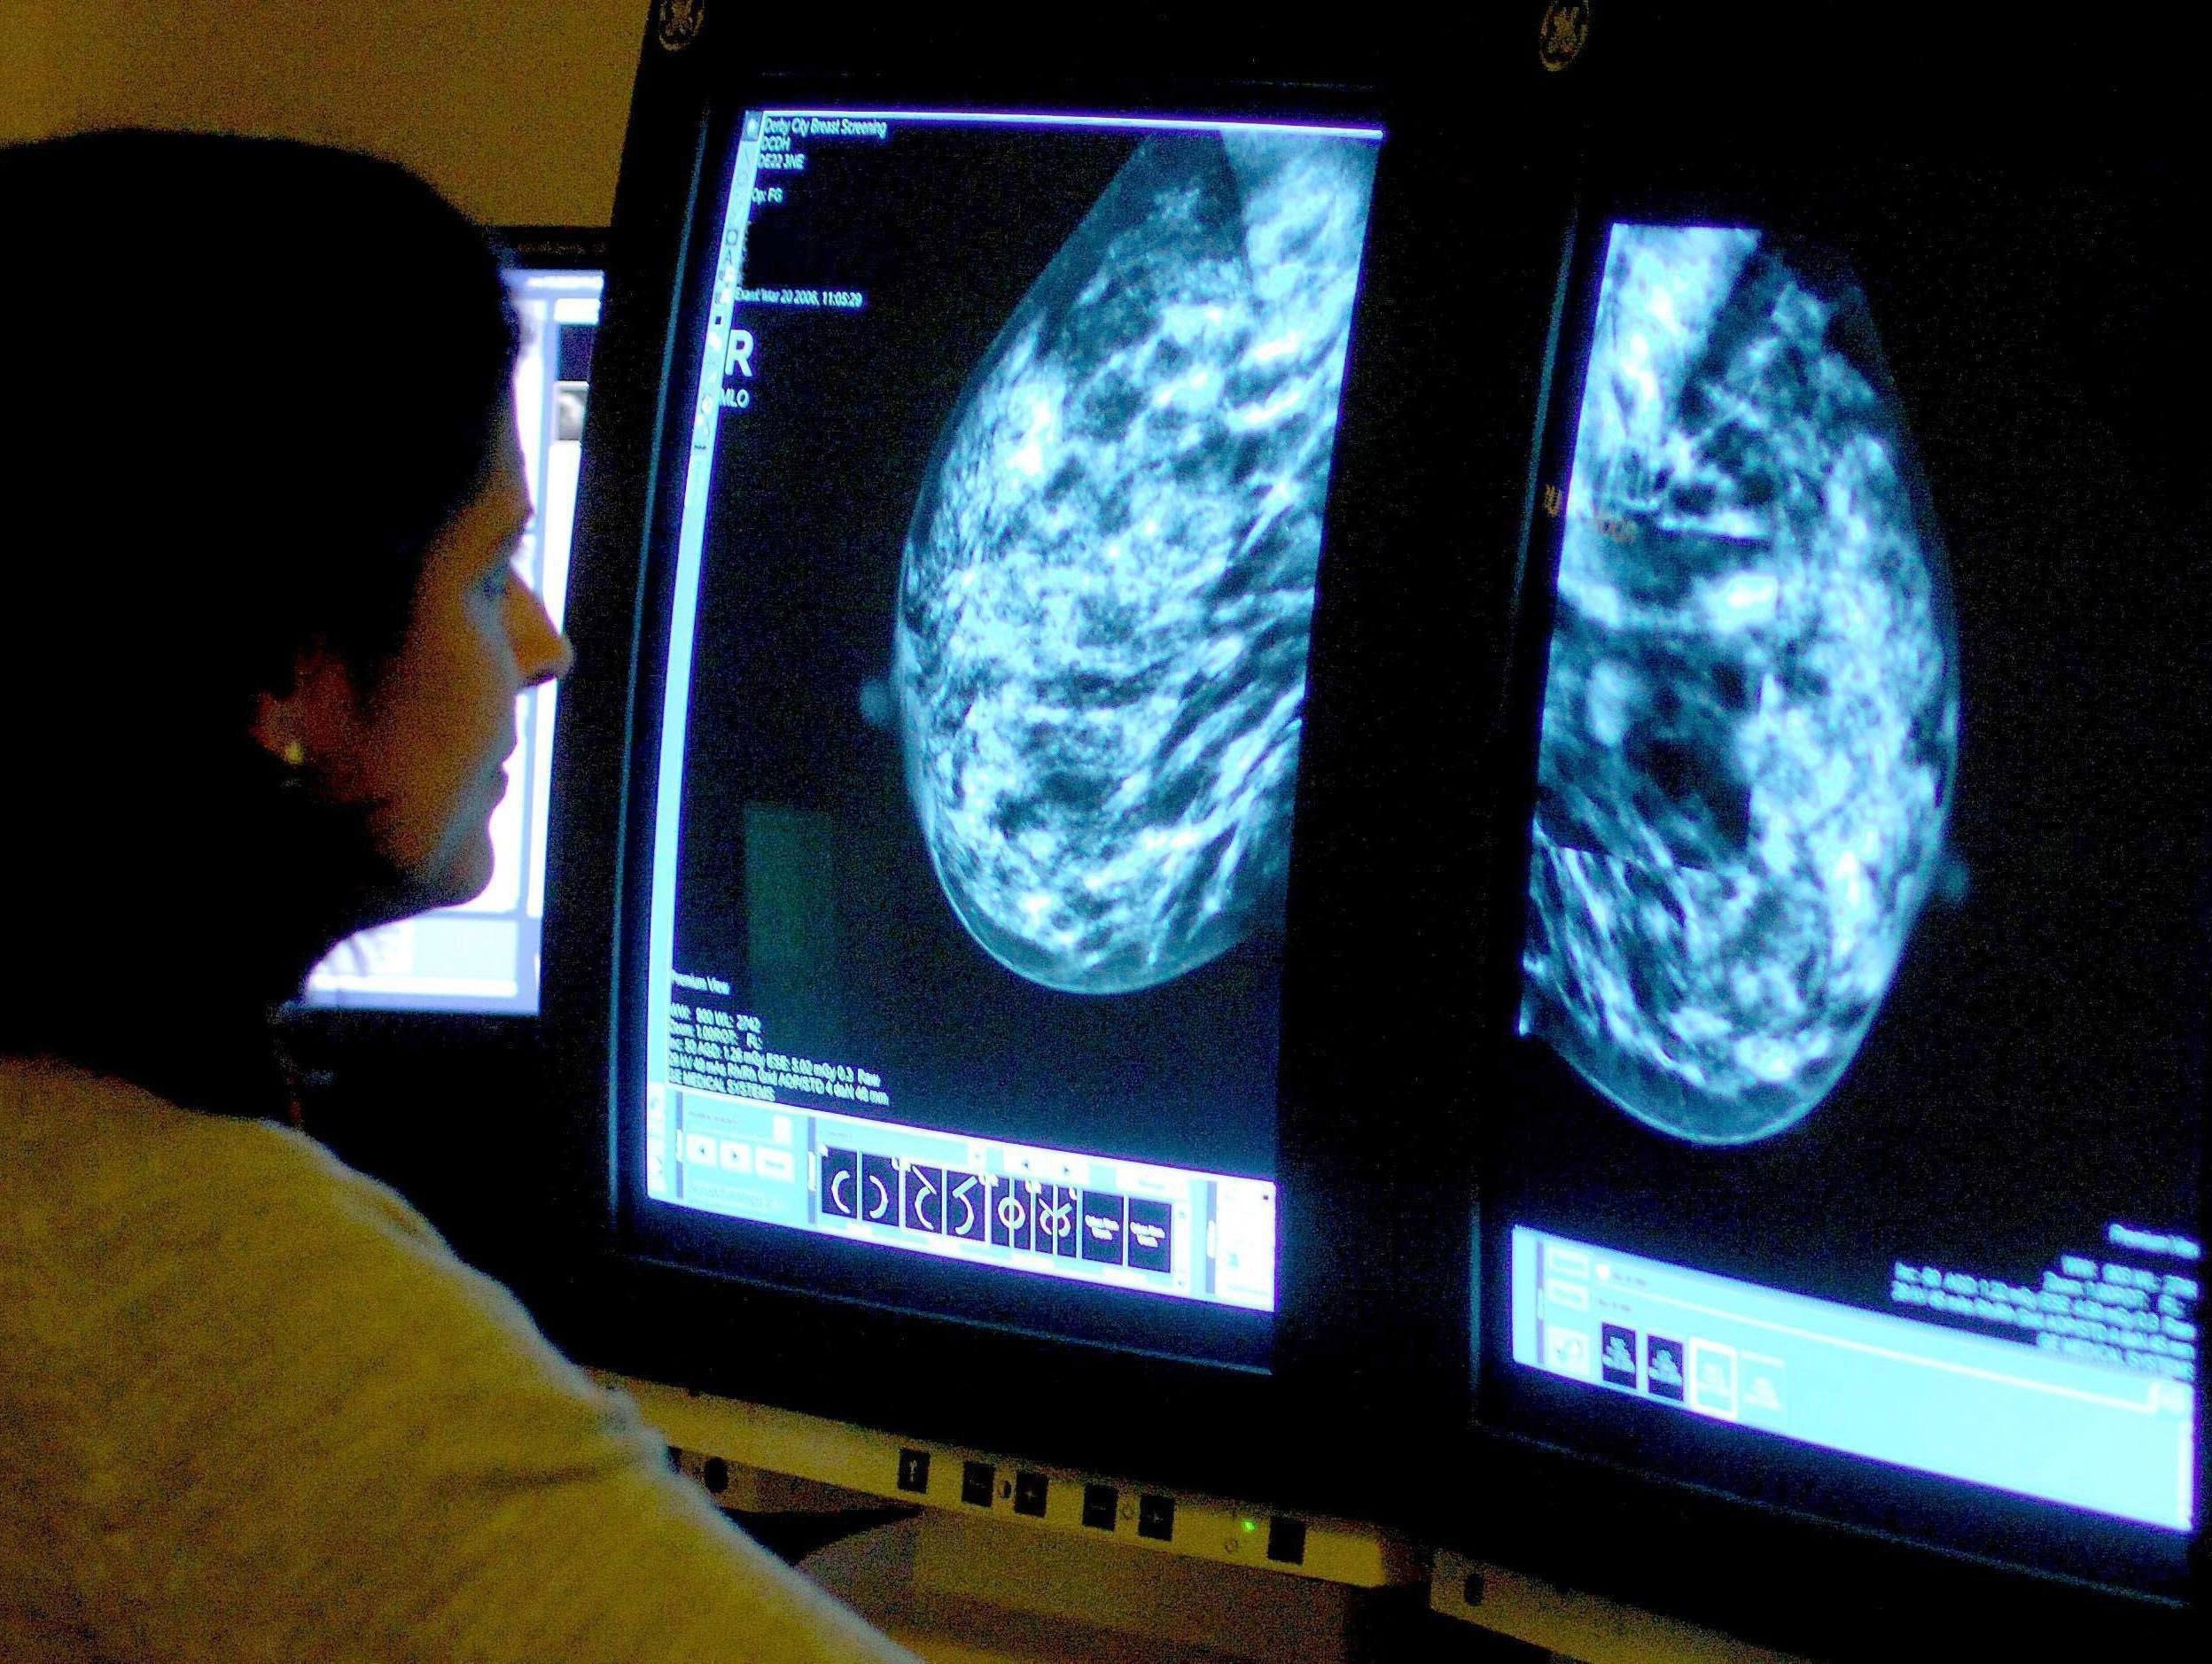 New cancer therapy could benefit hundreds who have no other treatments